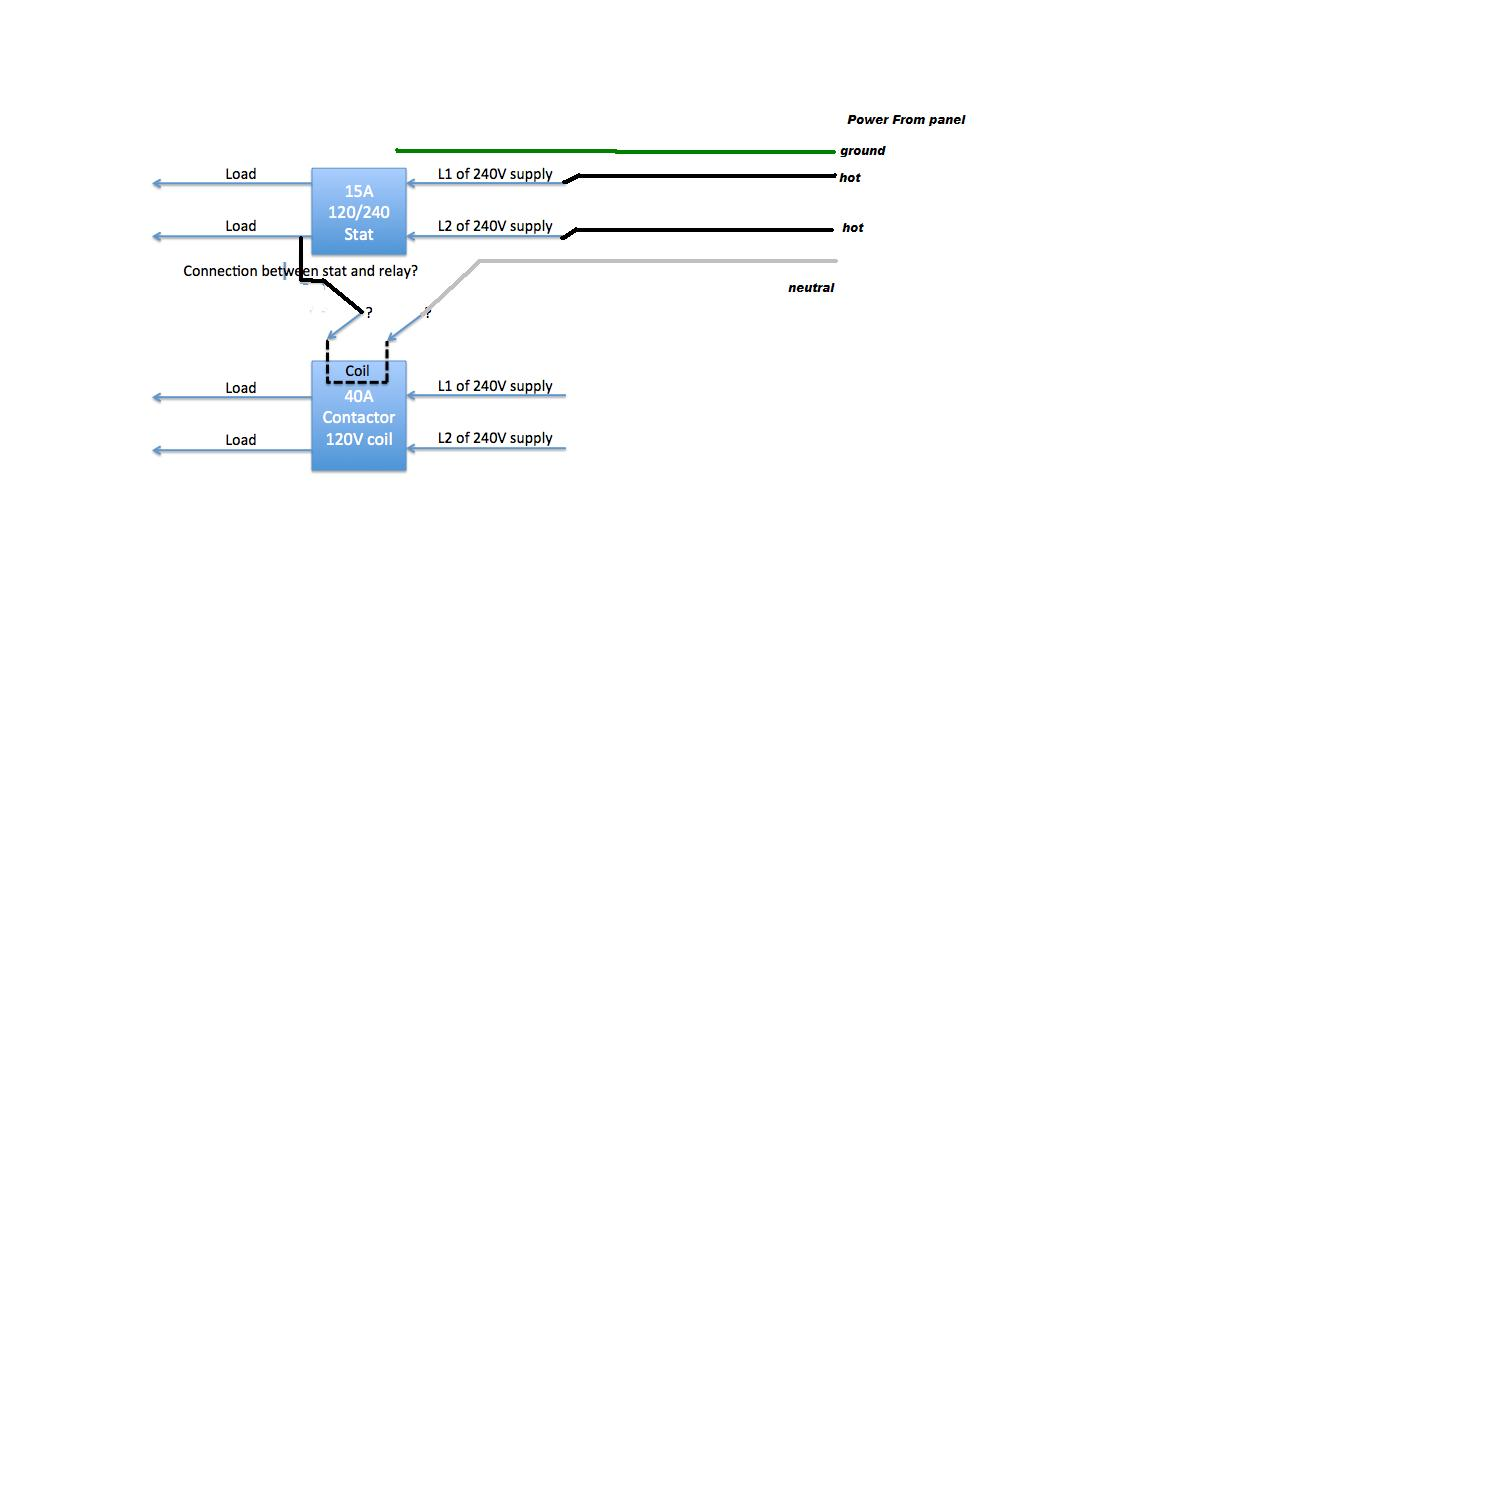 I Have A 240v Application Using 40a Relay Contactor 120v Coil Wiring Diagram For Let Me Know